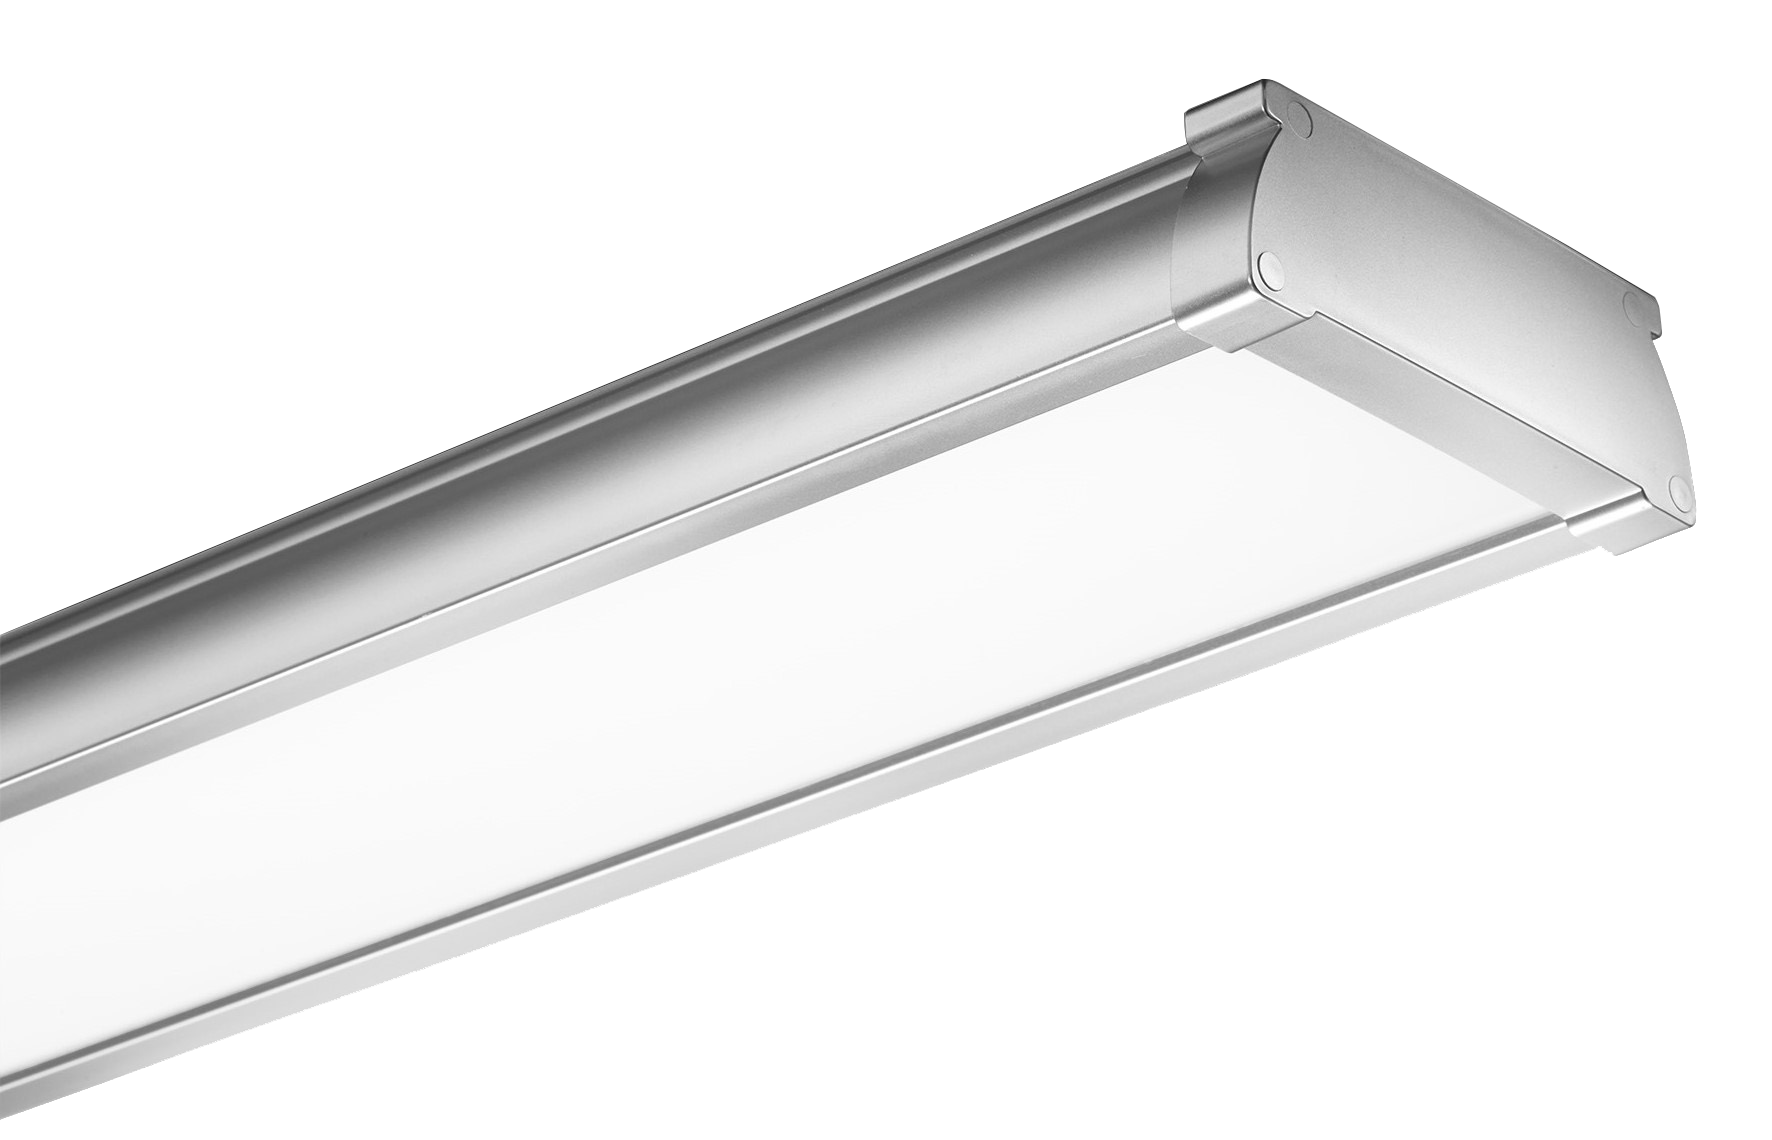 g5 led batten linear luminaire ip65 replaces fluorescent tubes. Black Bedroom Furniture Sets. Home Design Ideas